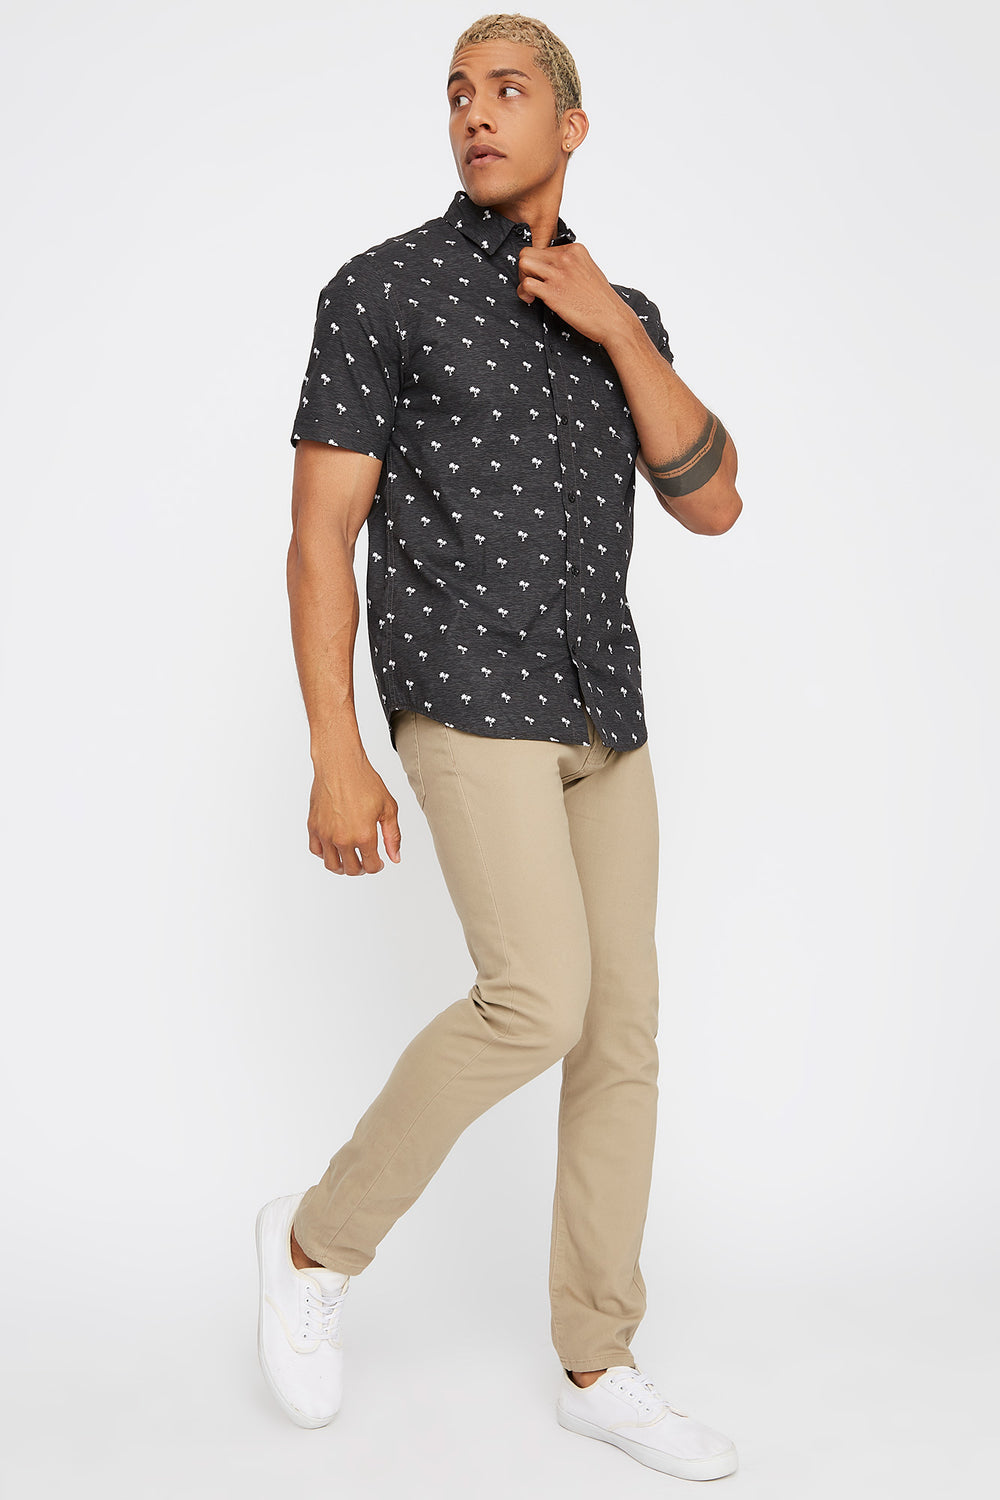 Printed Pocket Button-Up Short Sleeve Shirt Charcoal